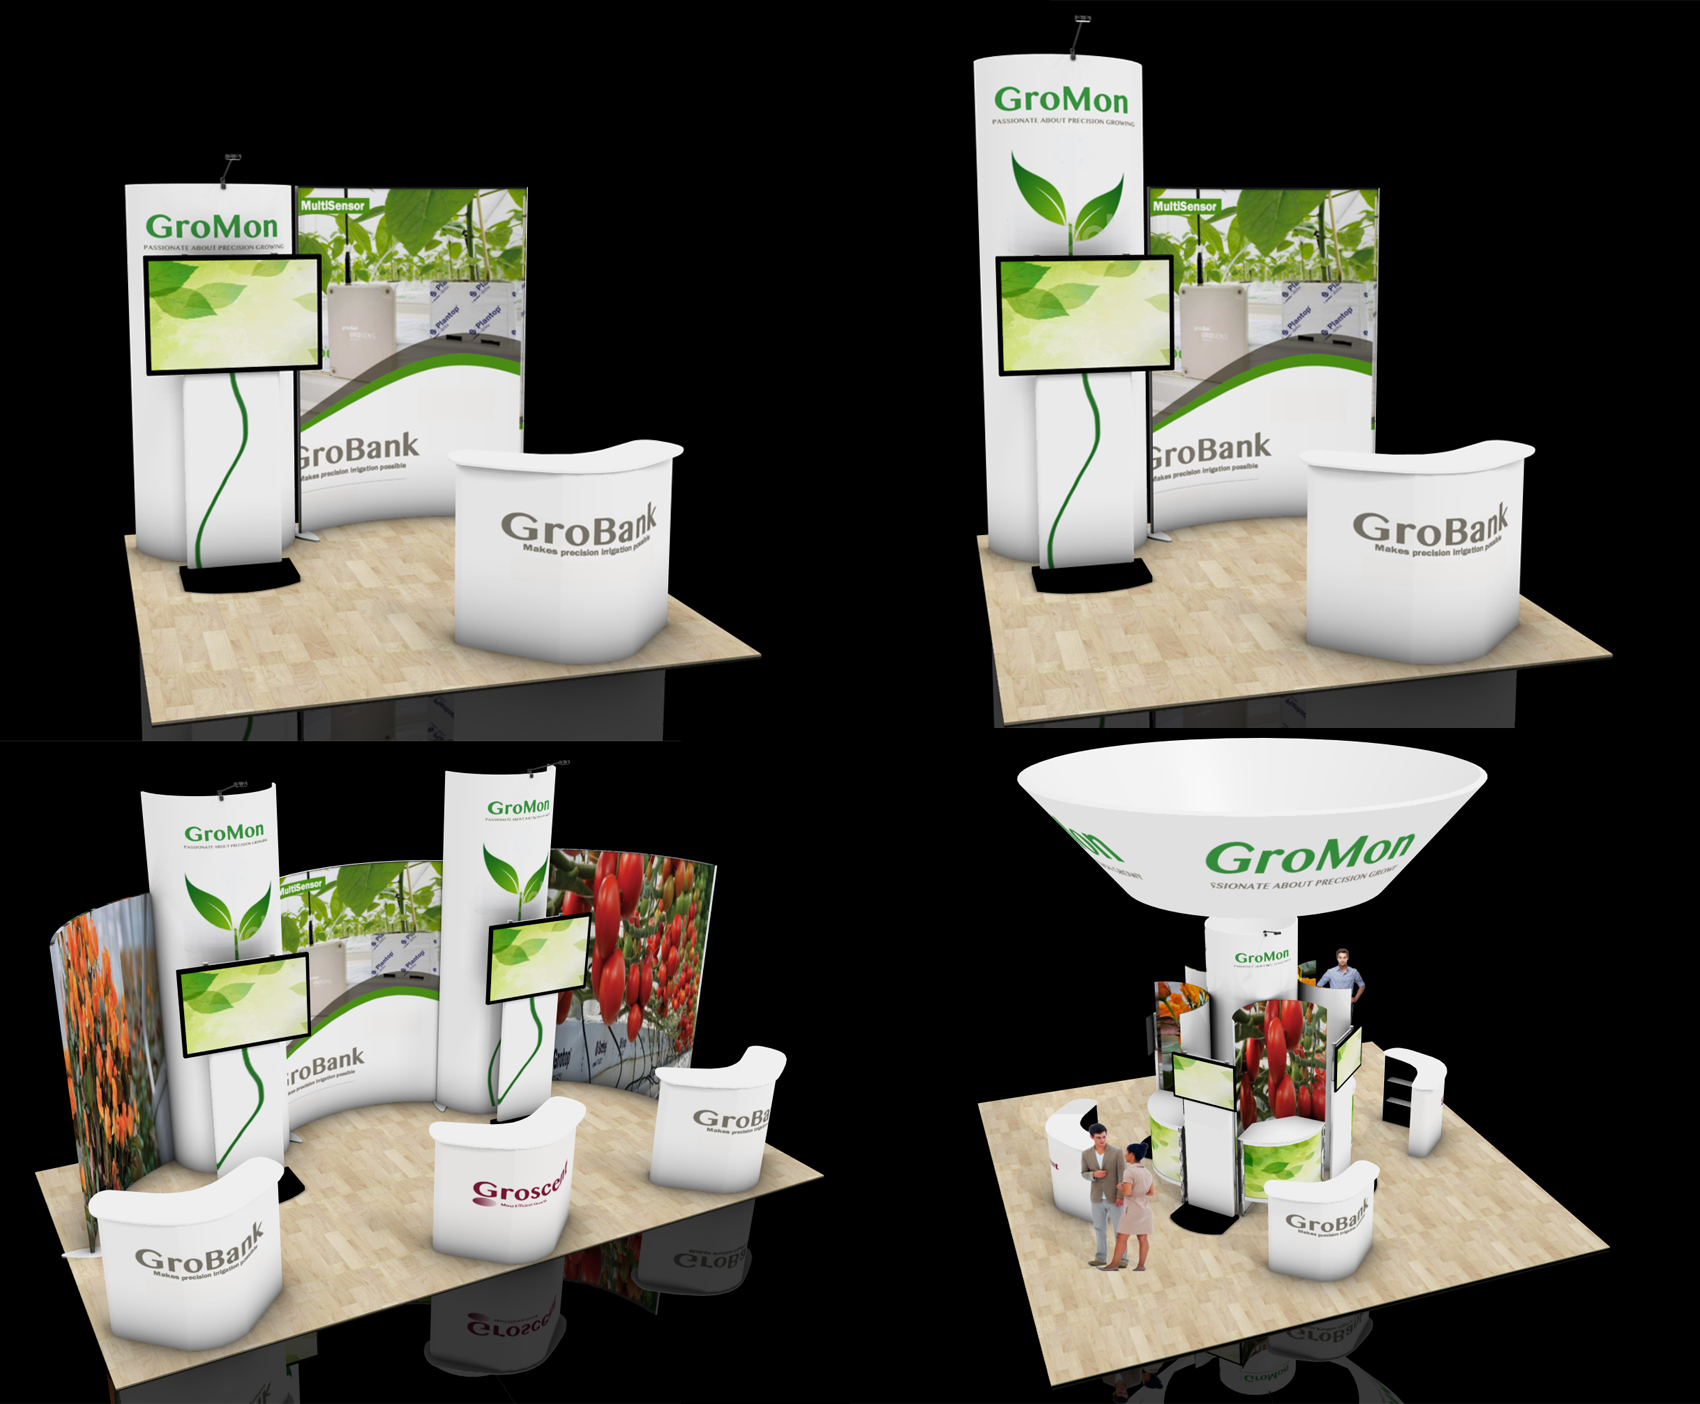 For your custom needs, the EyeKon Group can help you develop your exhibit strategy and your exhibit. Call your personal project manager to plan your event ...